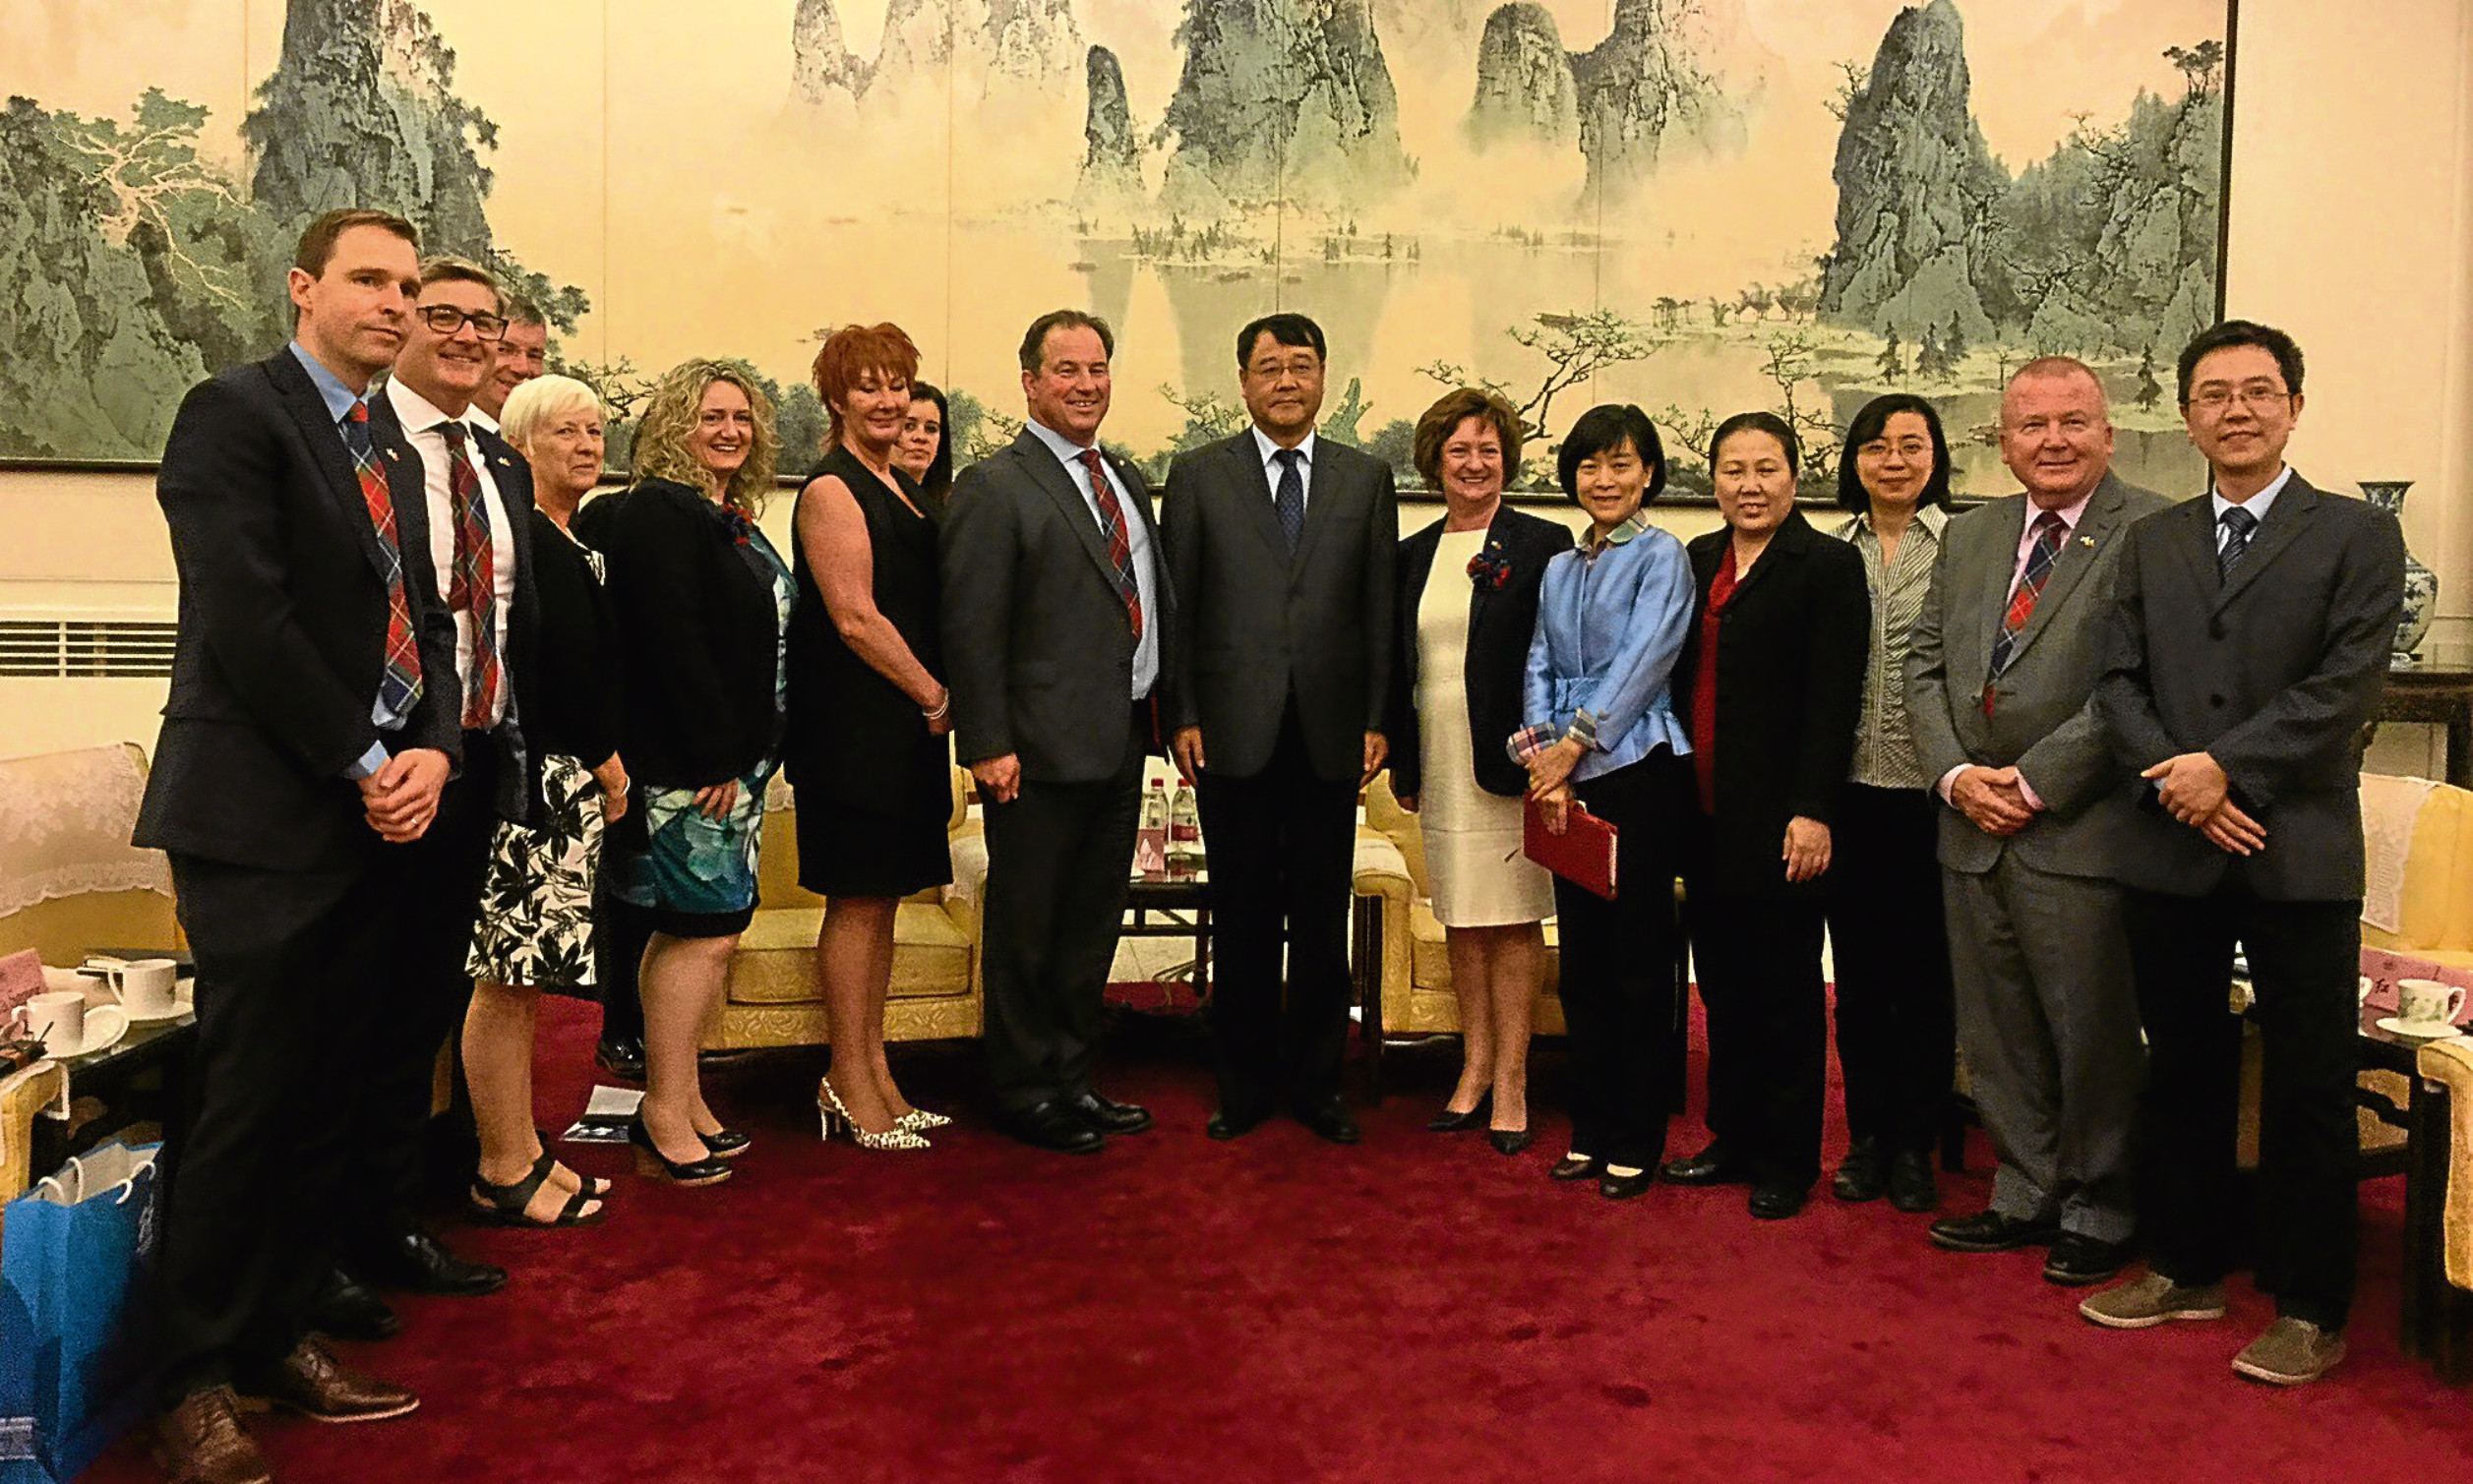 Members of Dundee and Angus Chamber of Commerce joined a high level trade mission to China